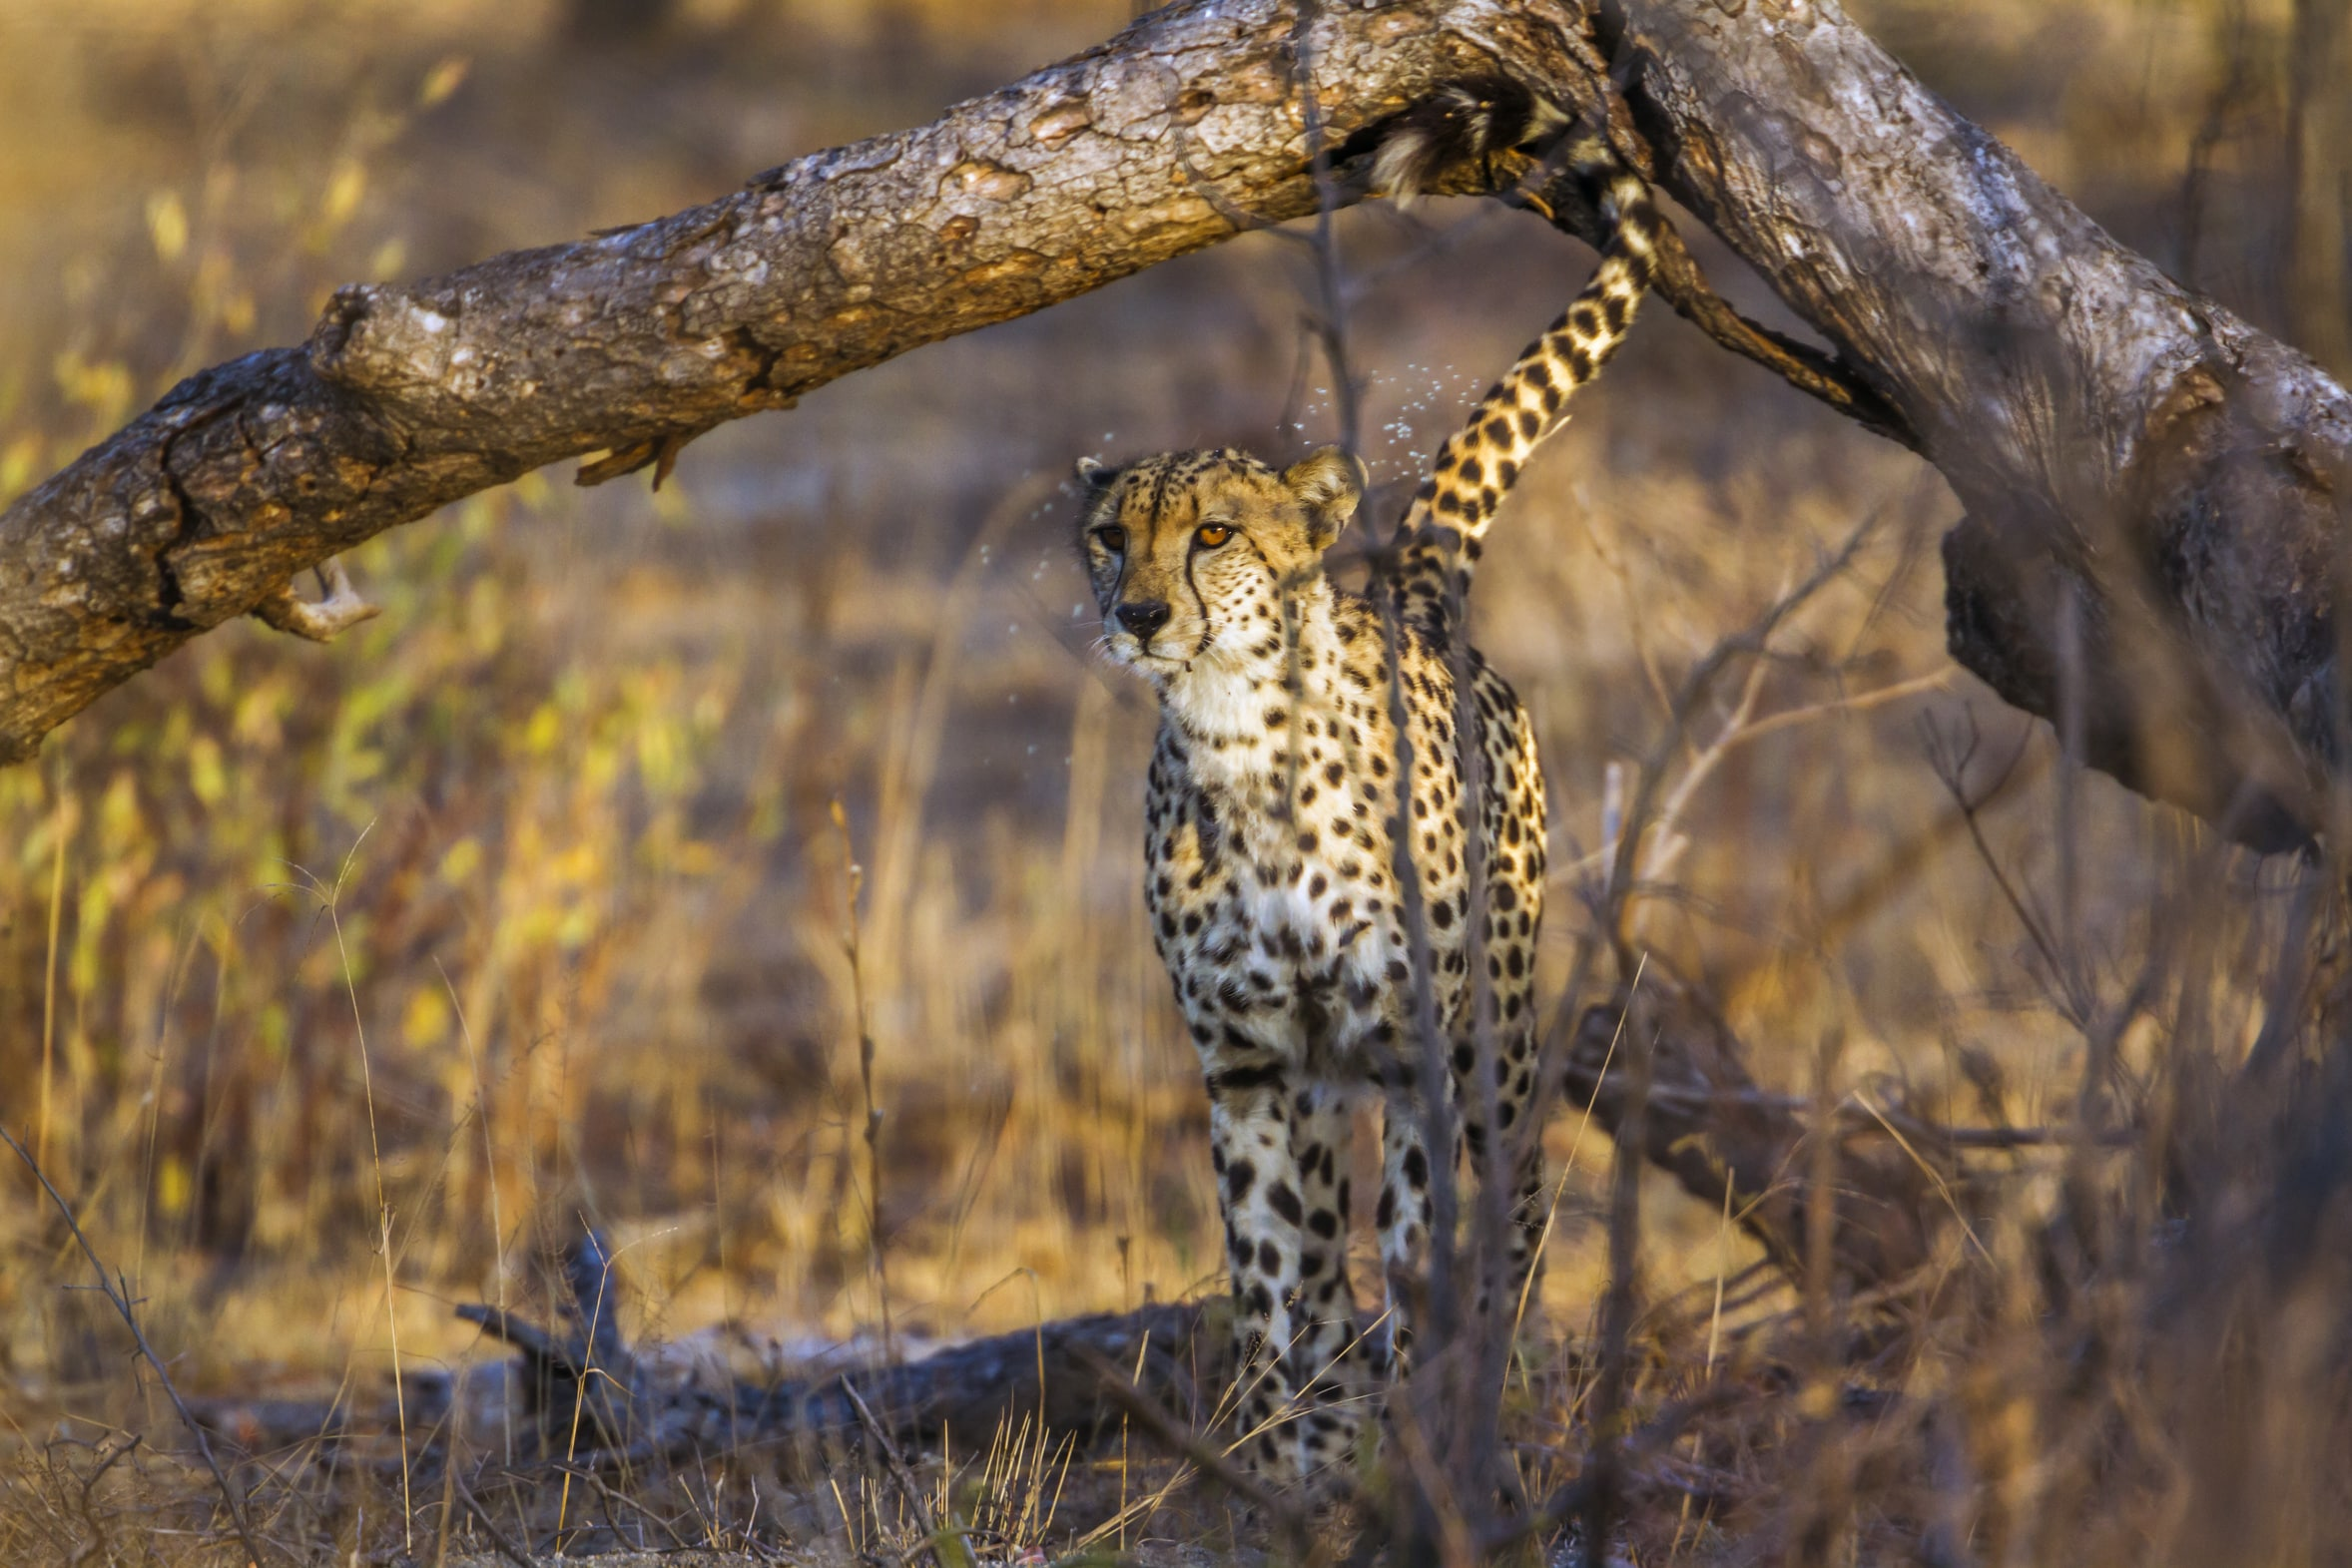 Wildlife is one of South Africa's main draws